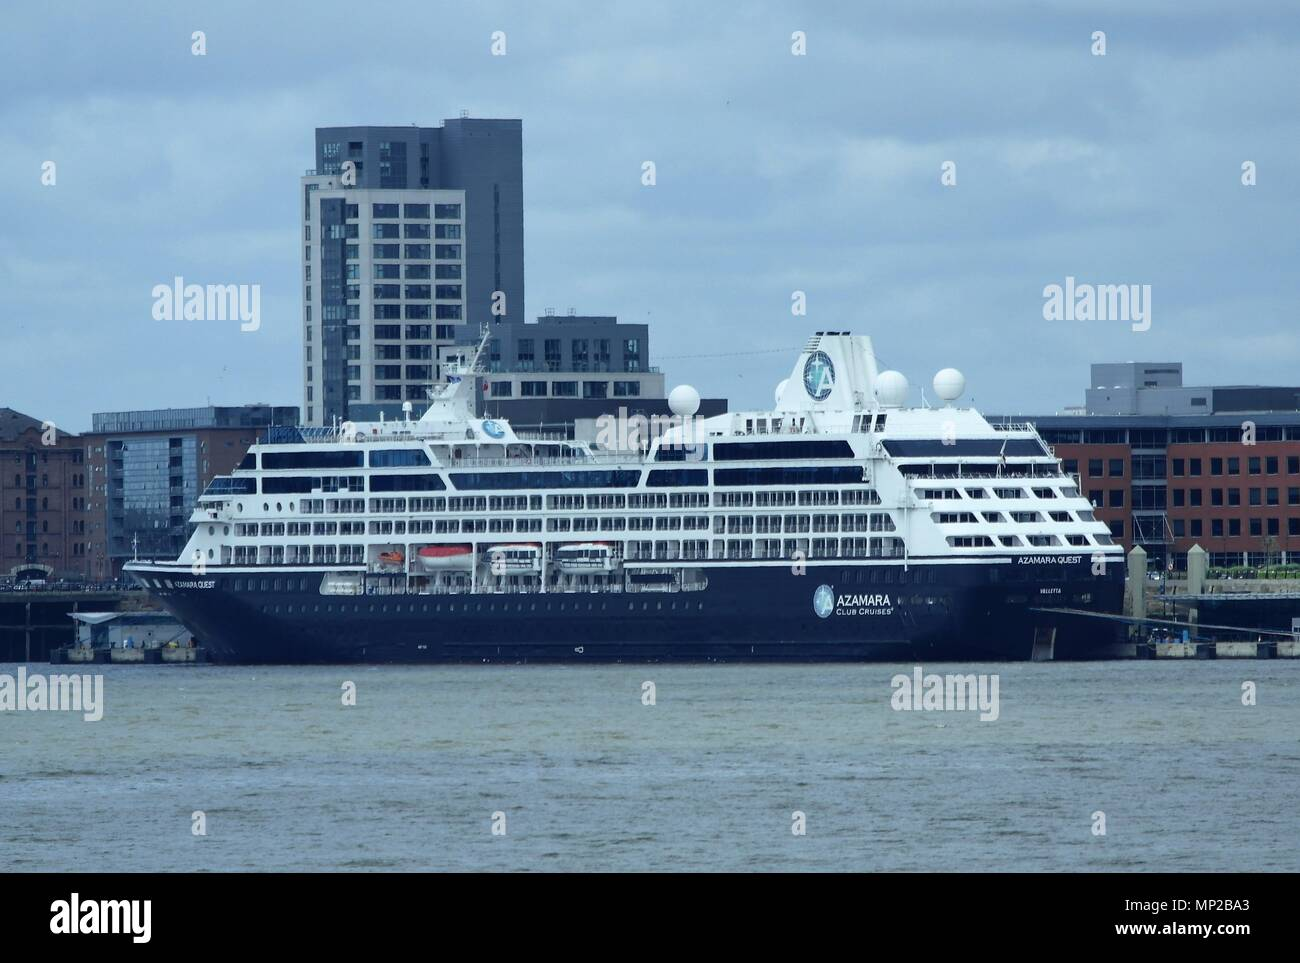 Liverpool,uk fred olson cruise ship Braemar berthed in Liverpool credit Ian Fairbrother/Alamy - Stock Image